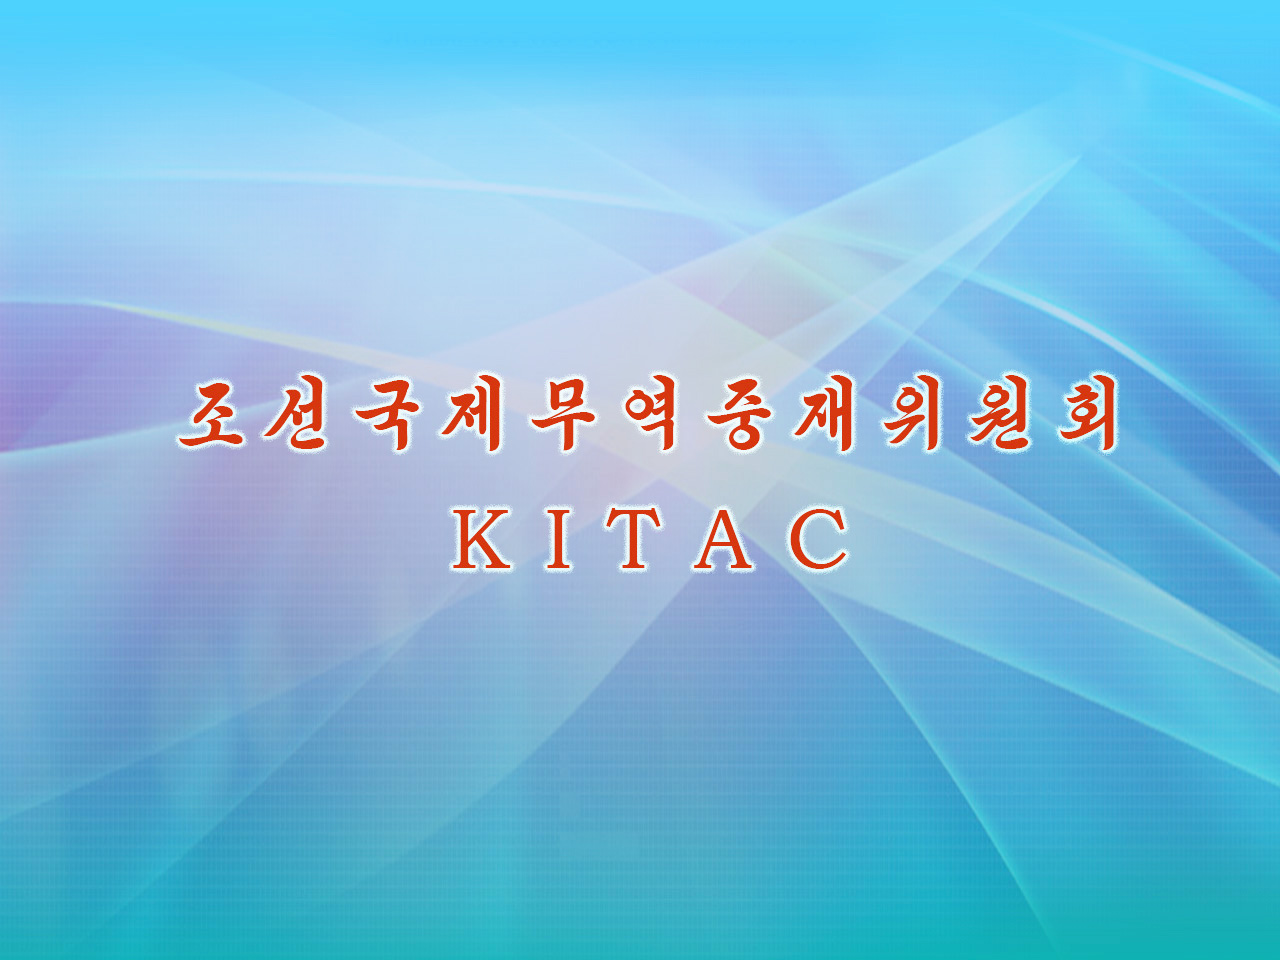 Korea International Trade Arbitration Committee